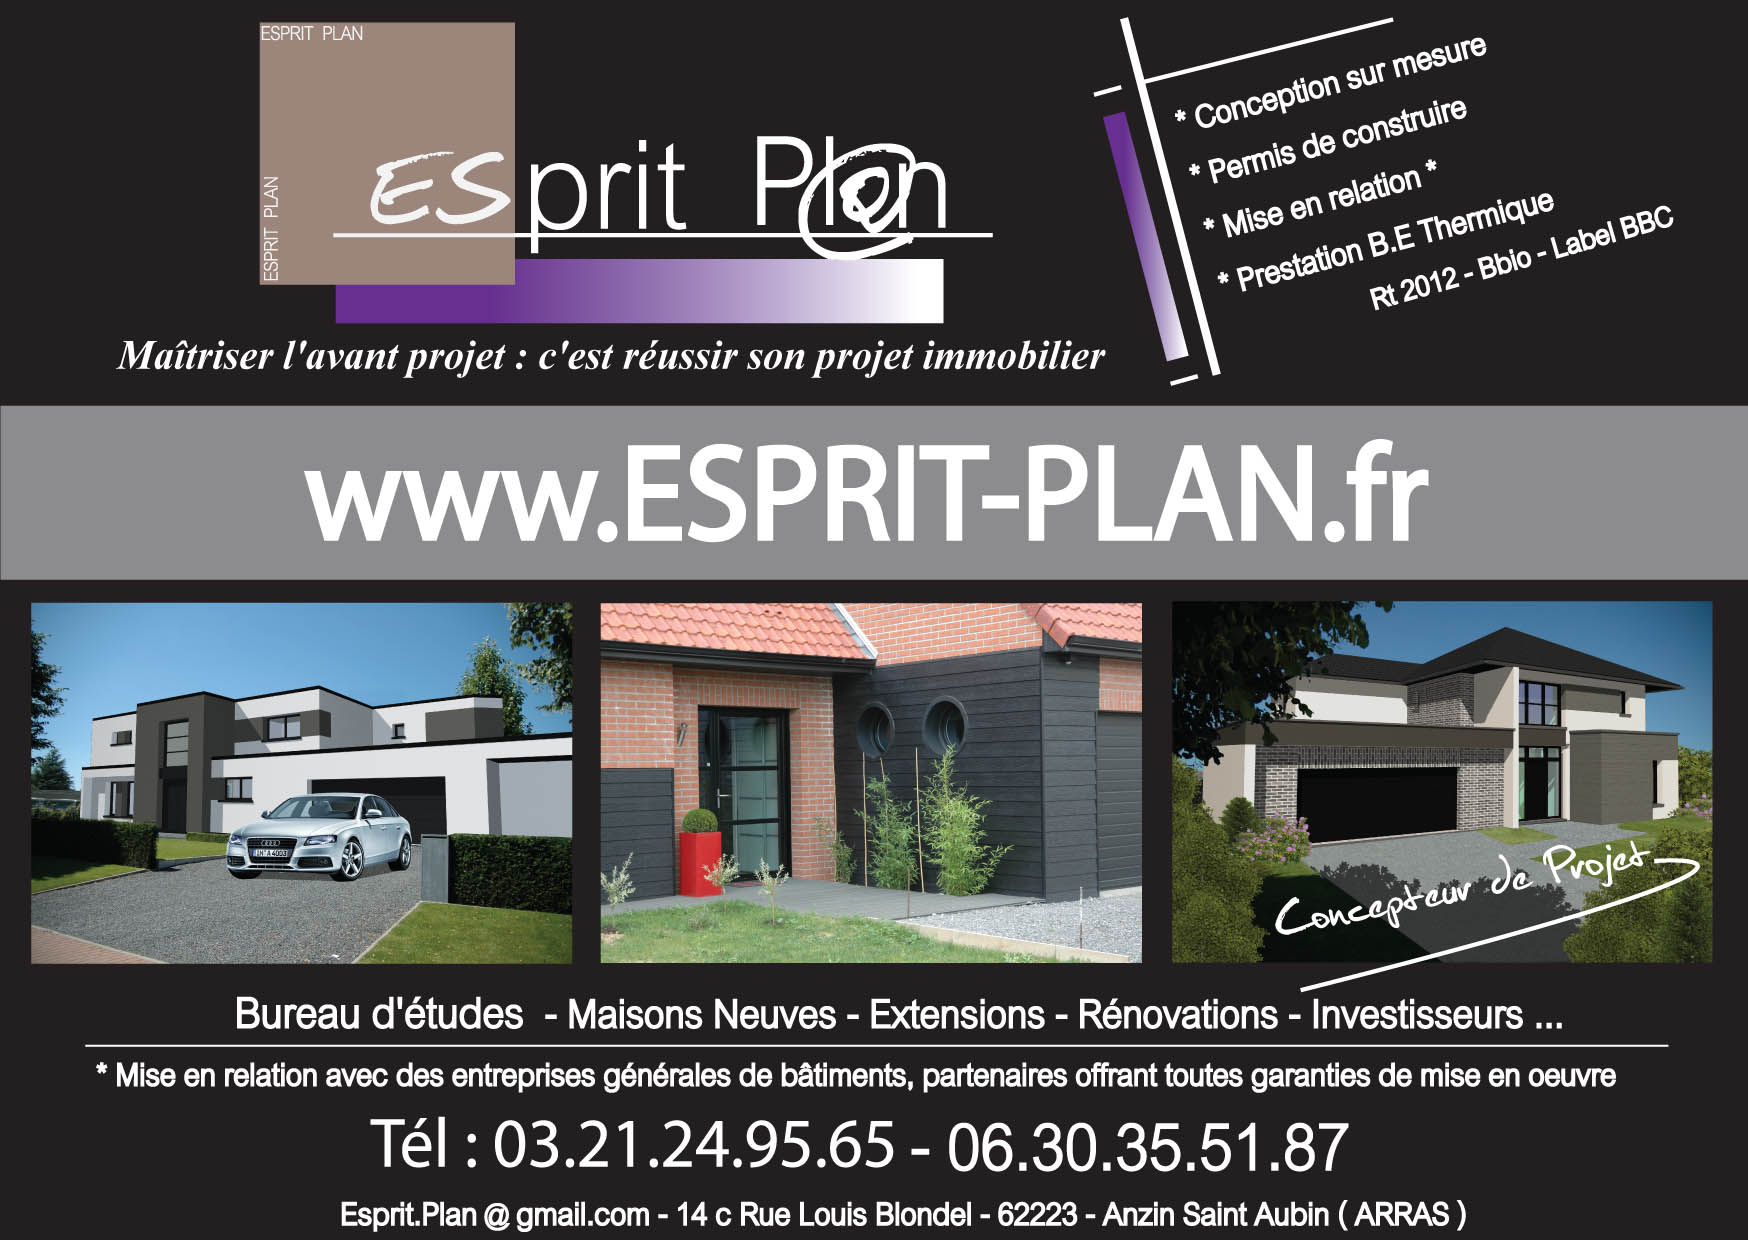 Publicite esprit plan prestation rt2012 bbio conception label bbc.jpg